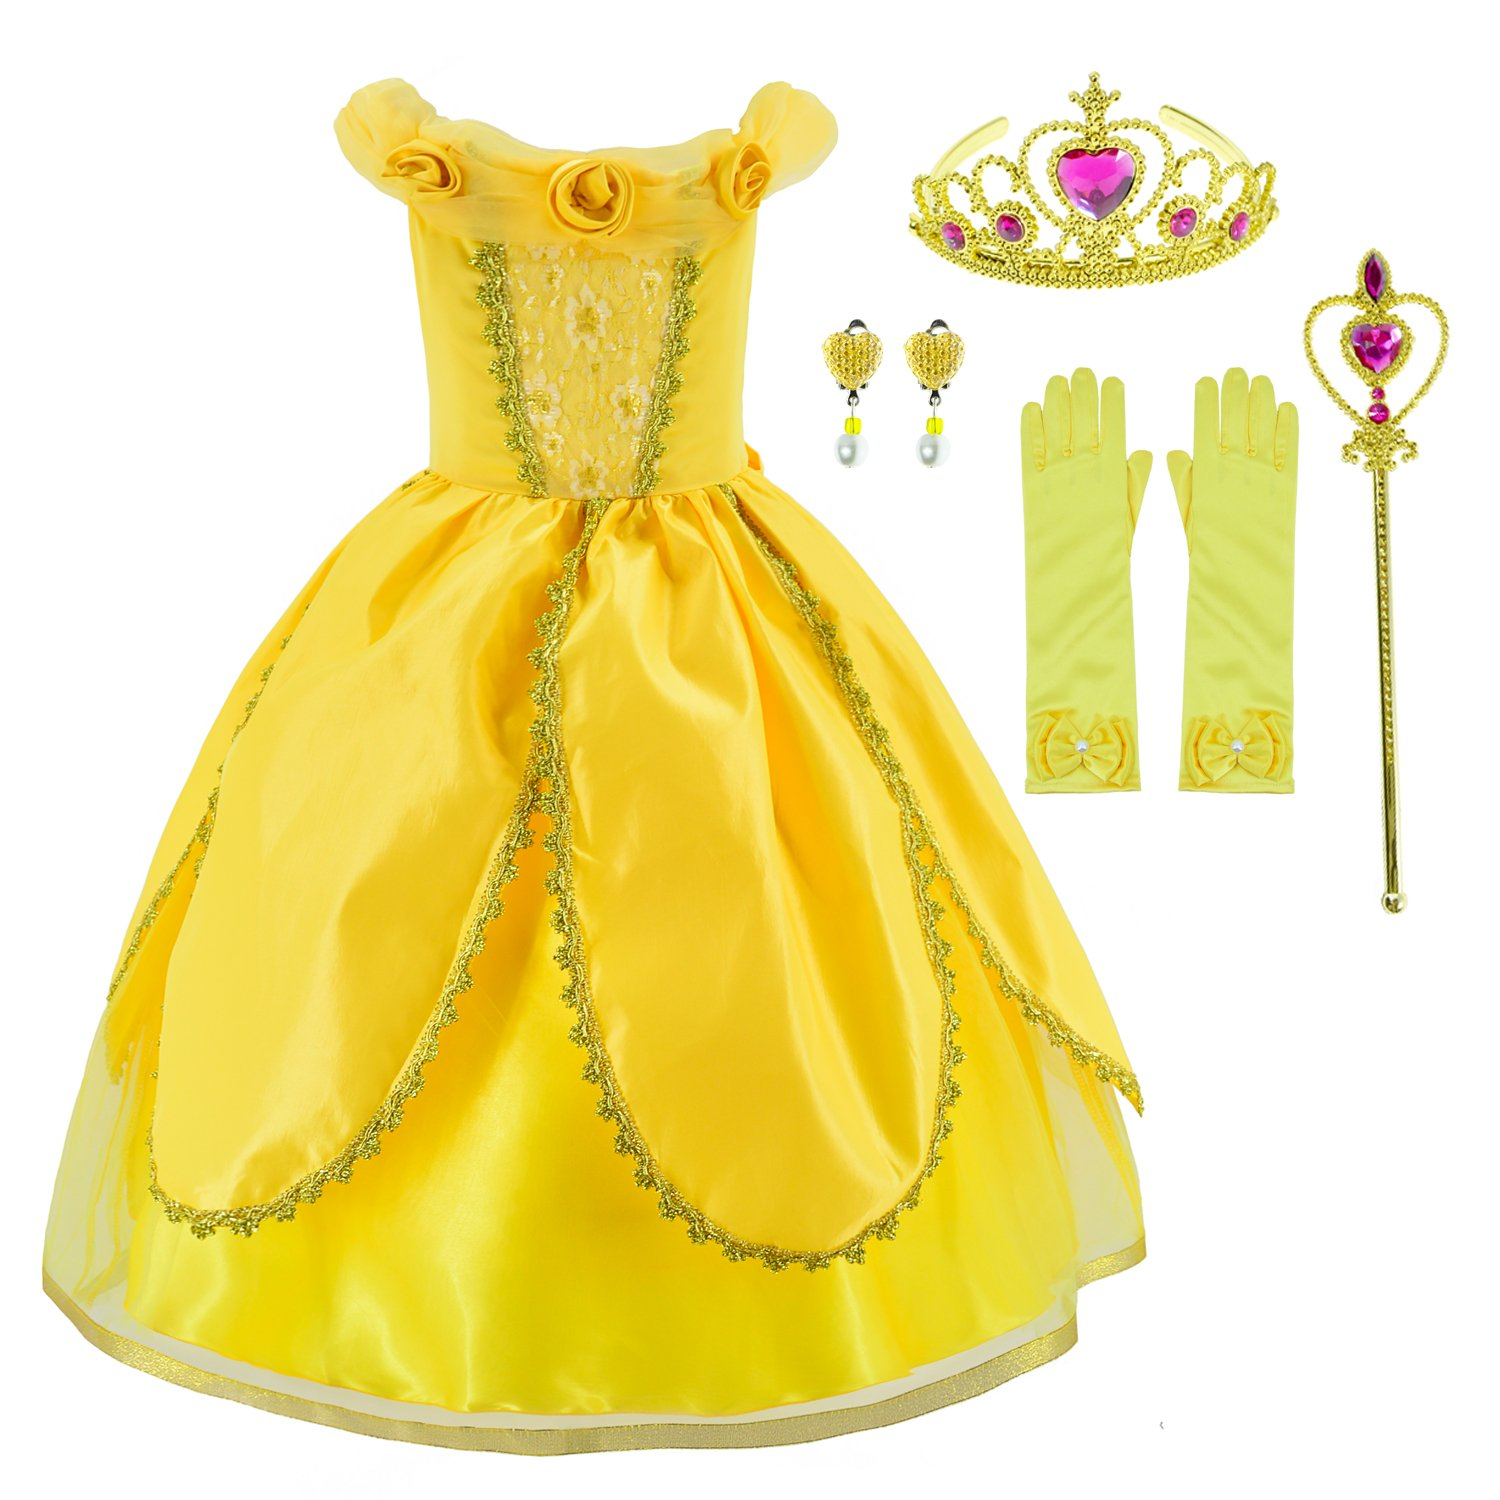 Princess Belle Costume Deluxe Party Fancy Dress Up For Girls with Accessories 10-12 Years(150cm)